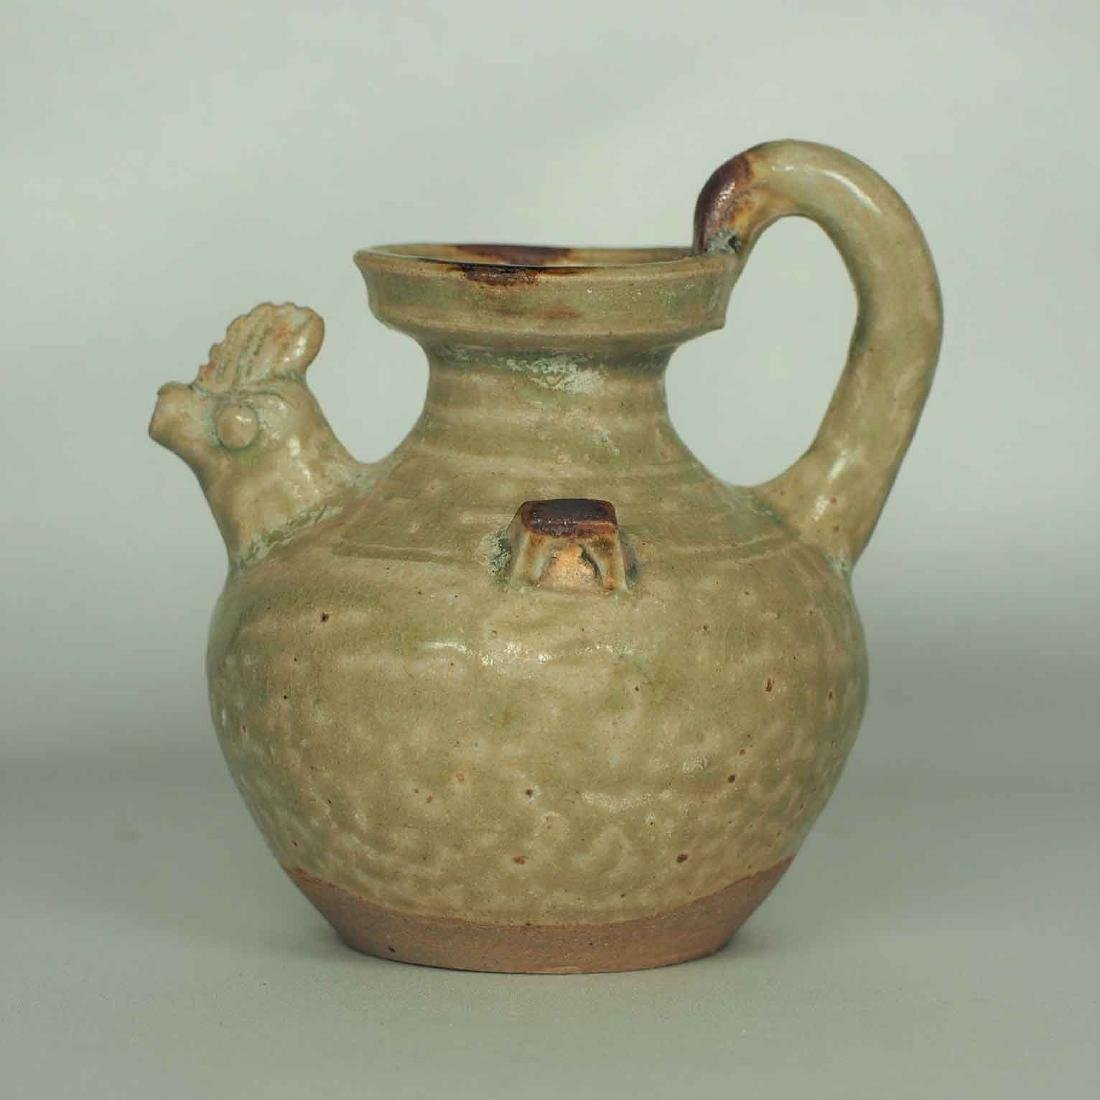 Yue Chicken Head Ewer Water Pot with Brown Spot,